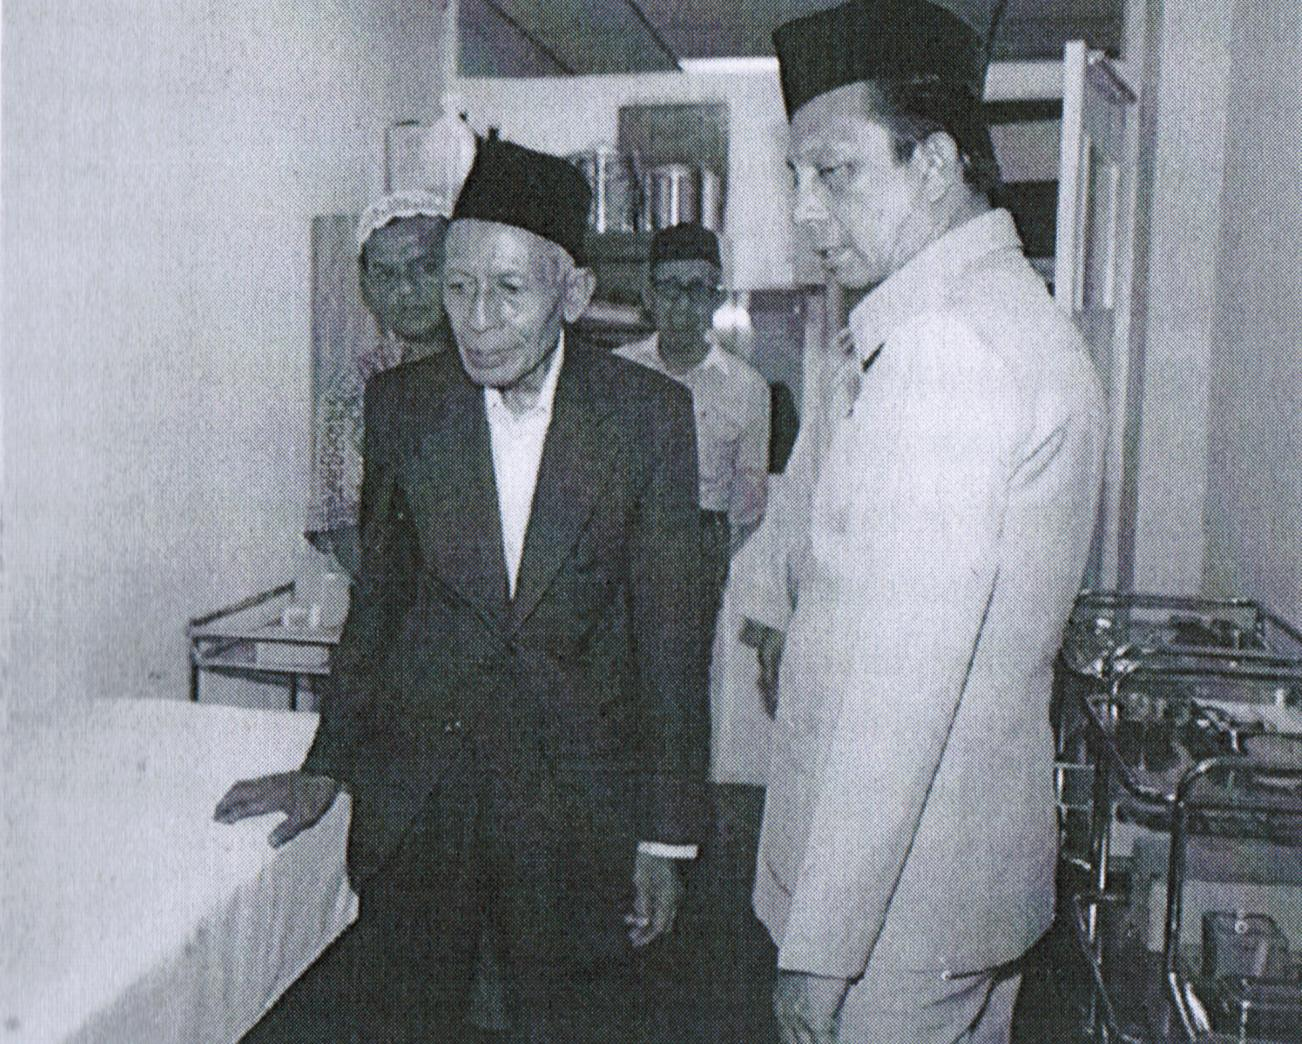 With Jamiyah's President on his right and ex-Mufti Sanusi Mahmood at the background (with spectacle)